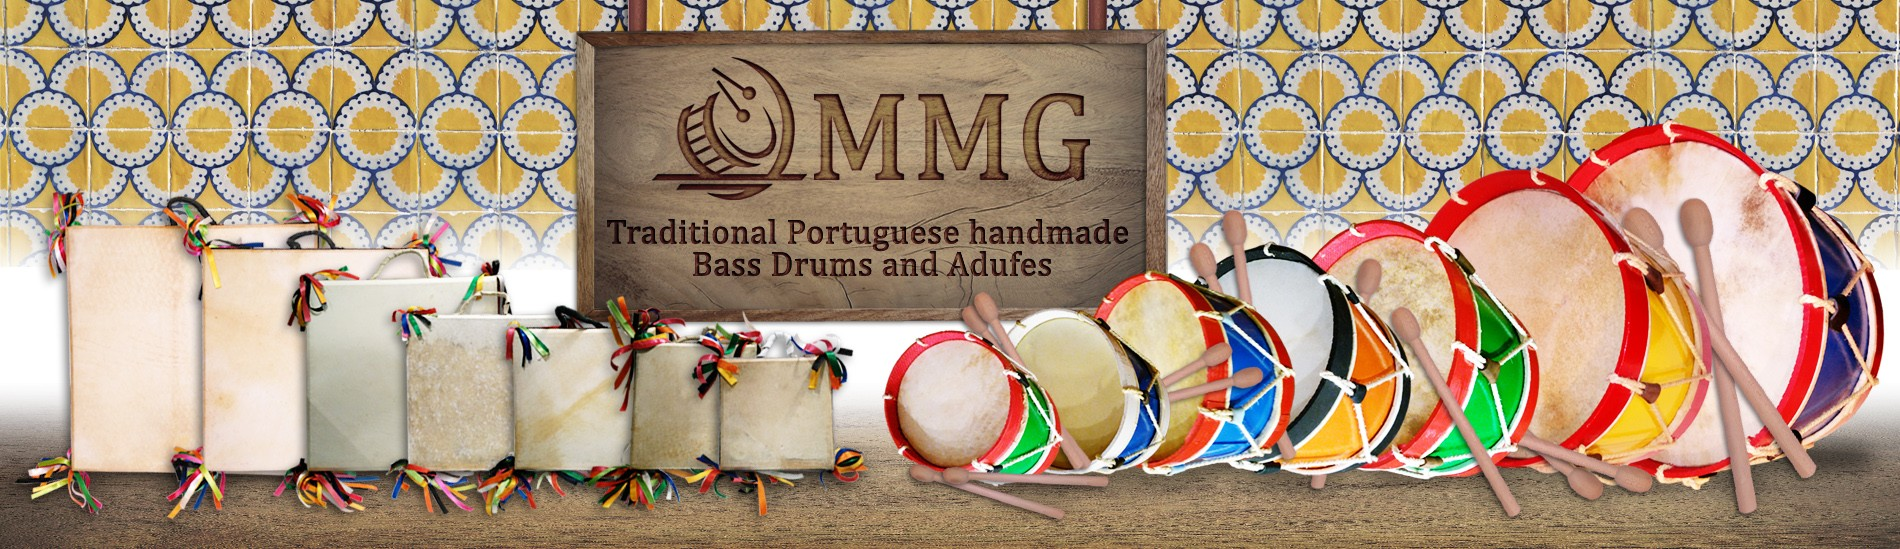 Traditional Portuguese handmade bass drums and adufes